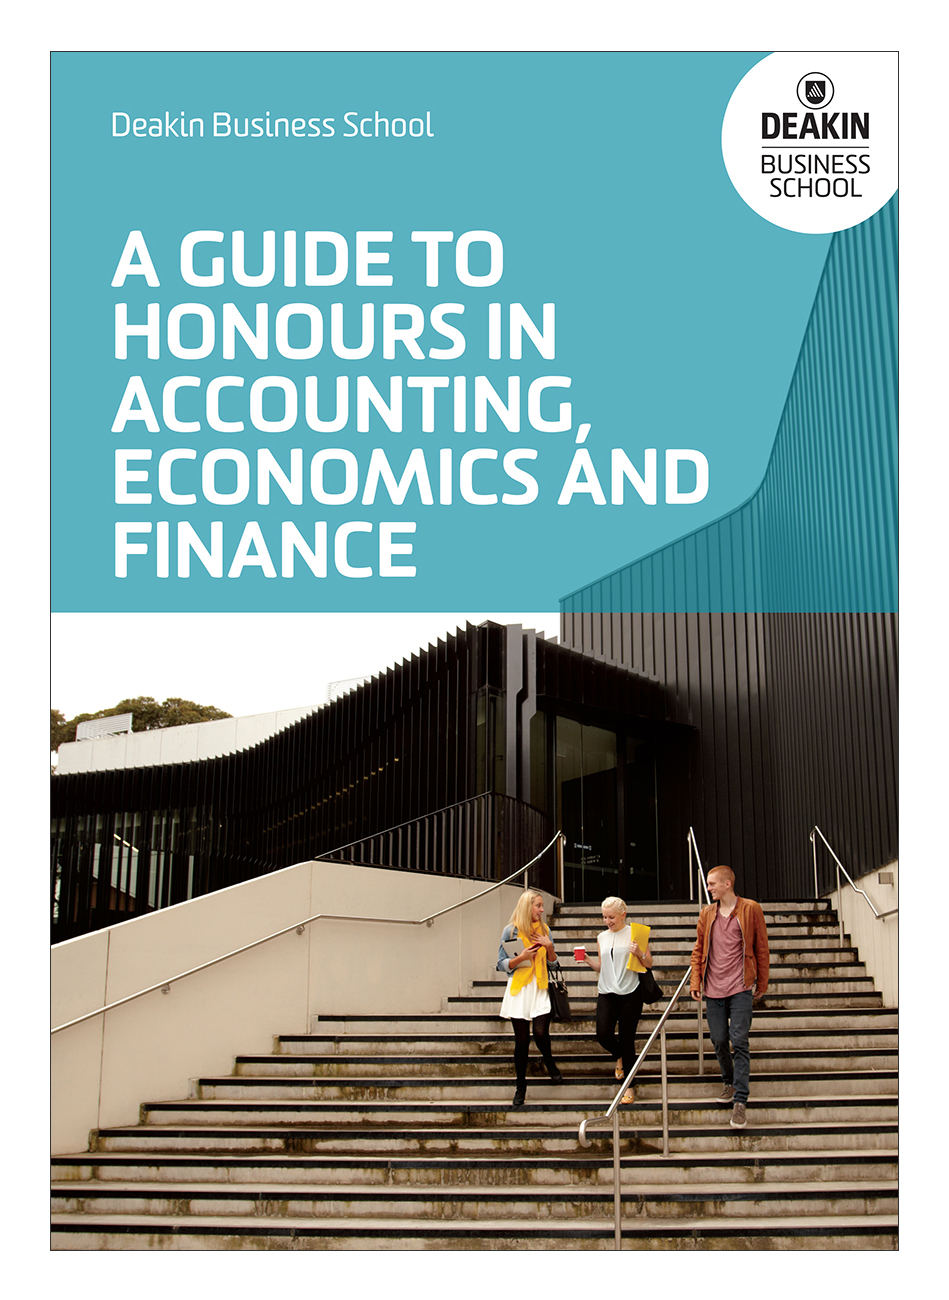 Deakin-guide-honours-booklet-a.jpg